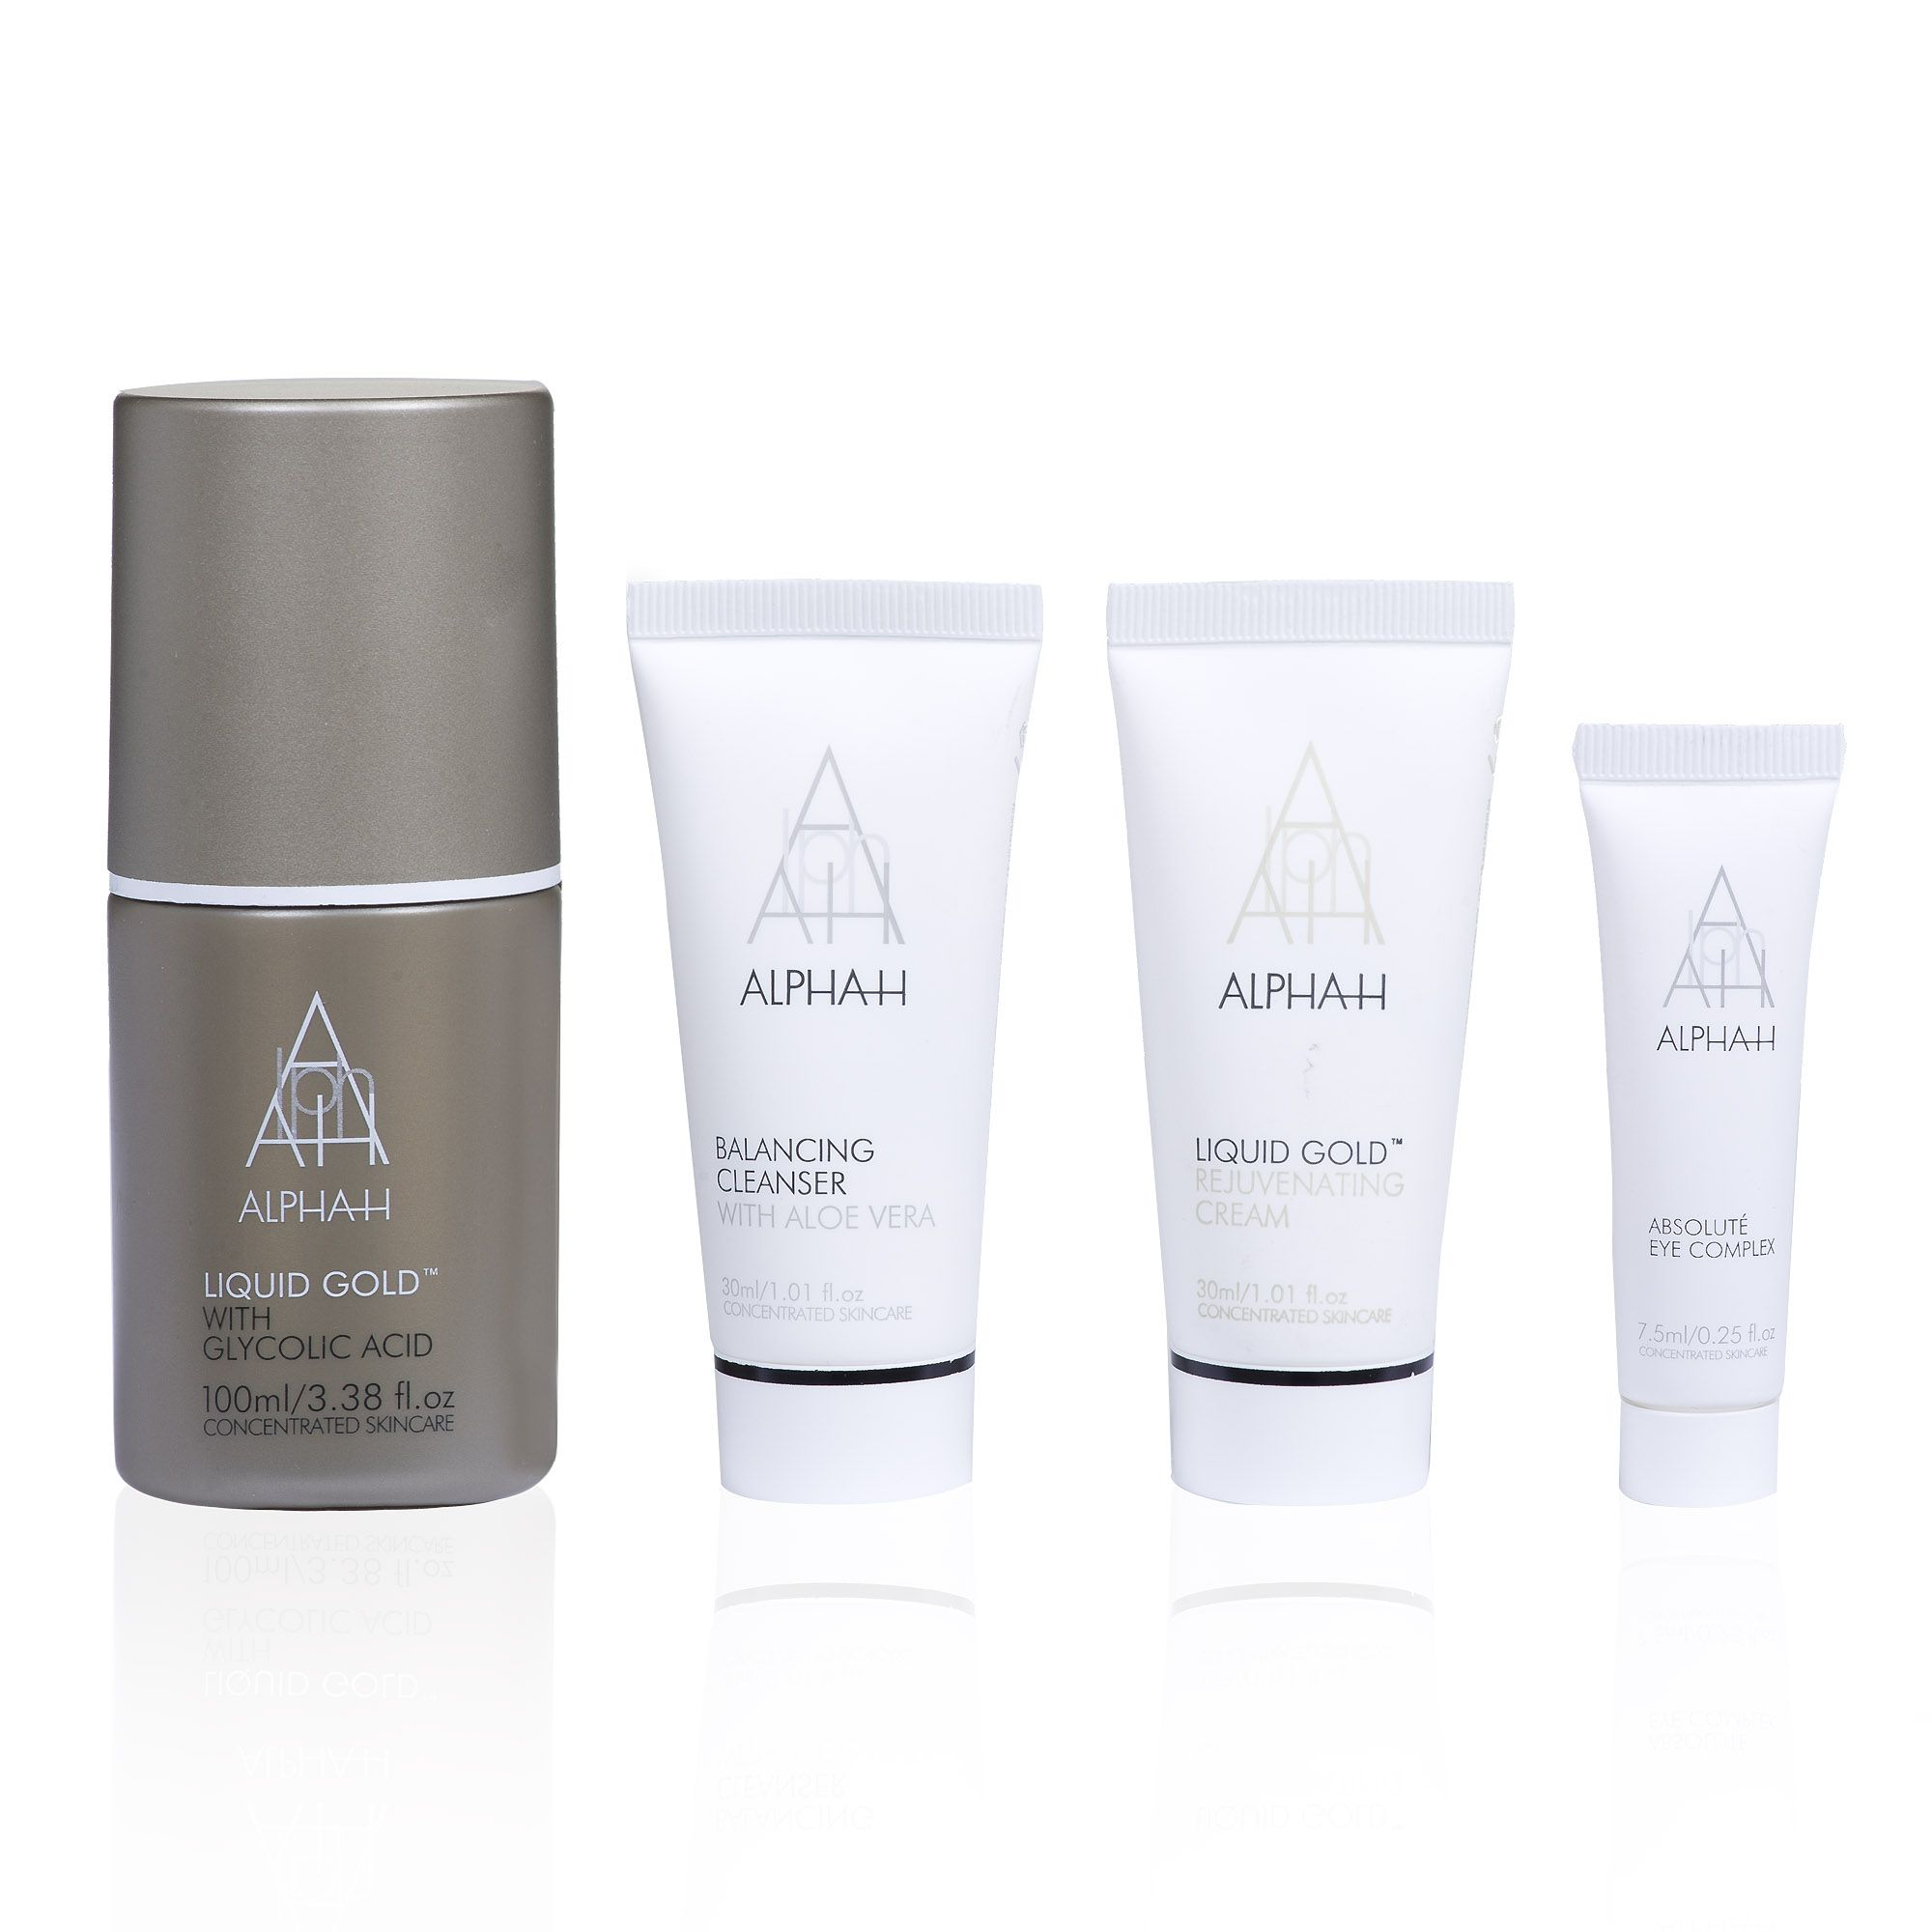 Alpha H 24 Hour Essential Beauty Collection: kit trattamento cosmetico viso-occhi (4 pz)